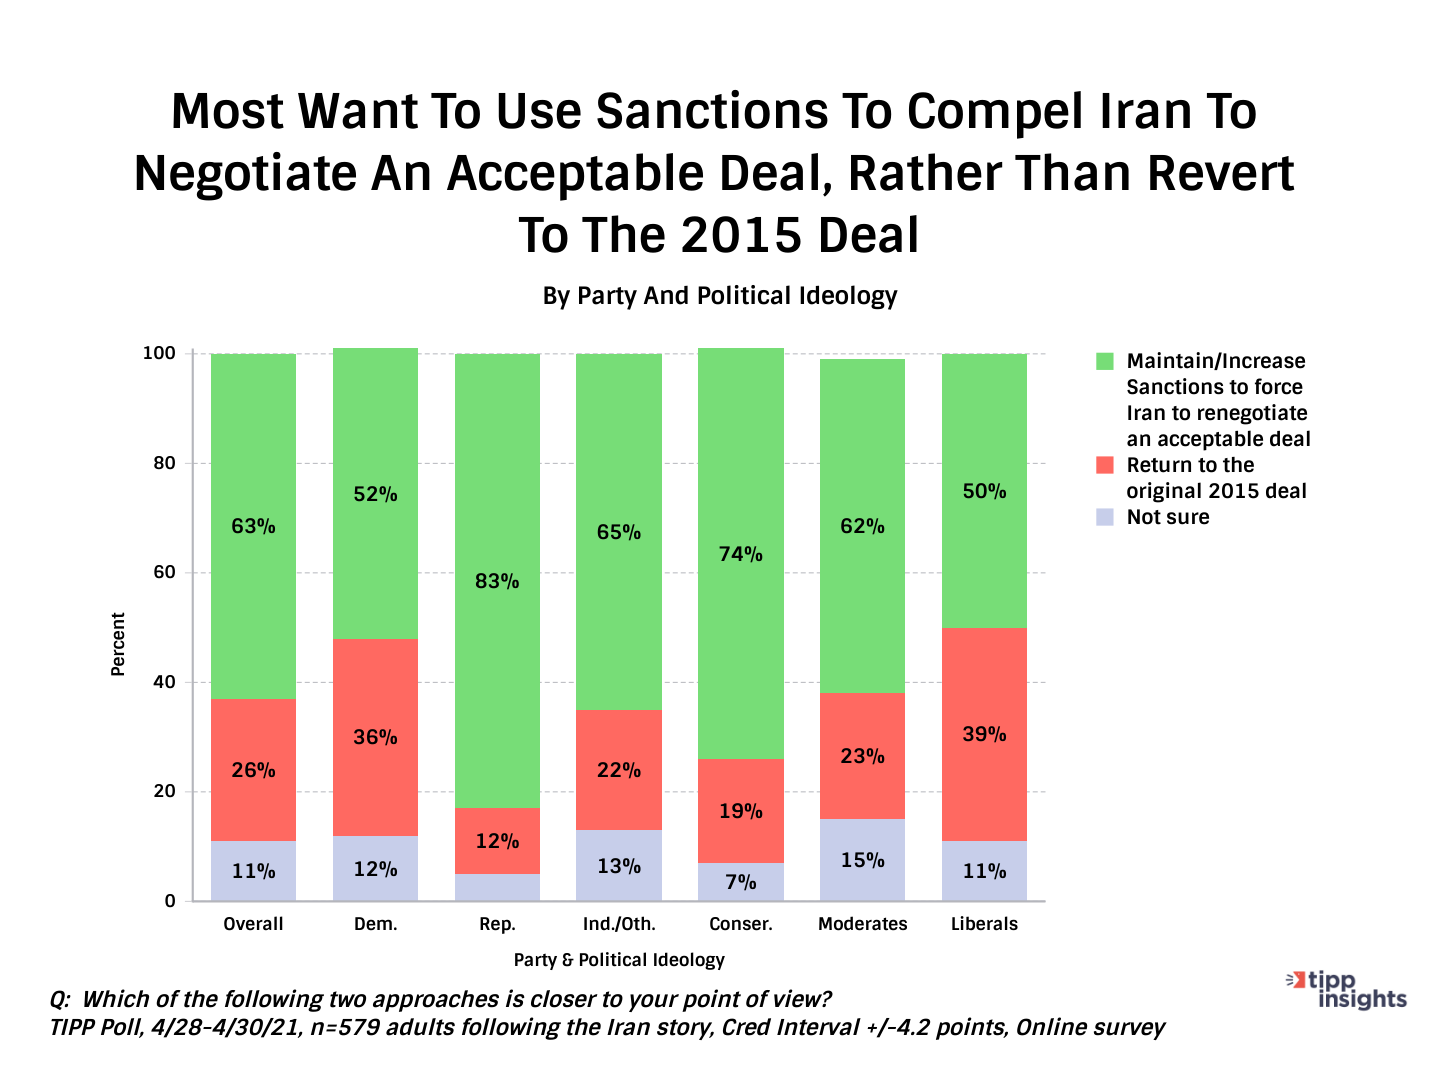 To or Not to Negotiate JCPOA - Chart